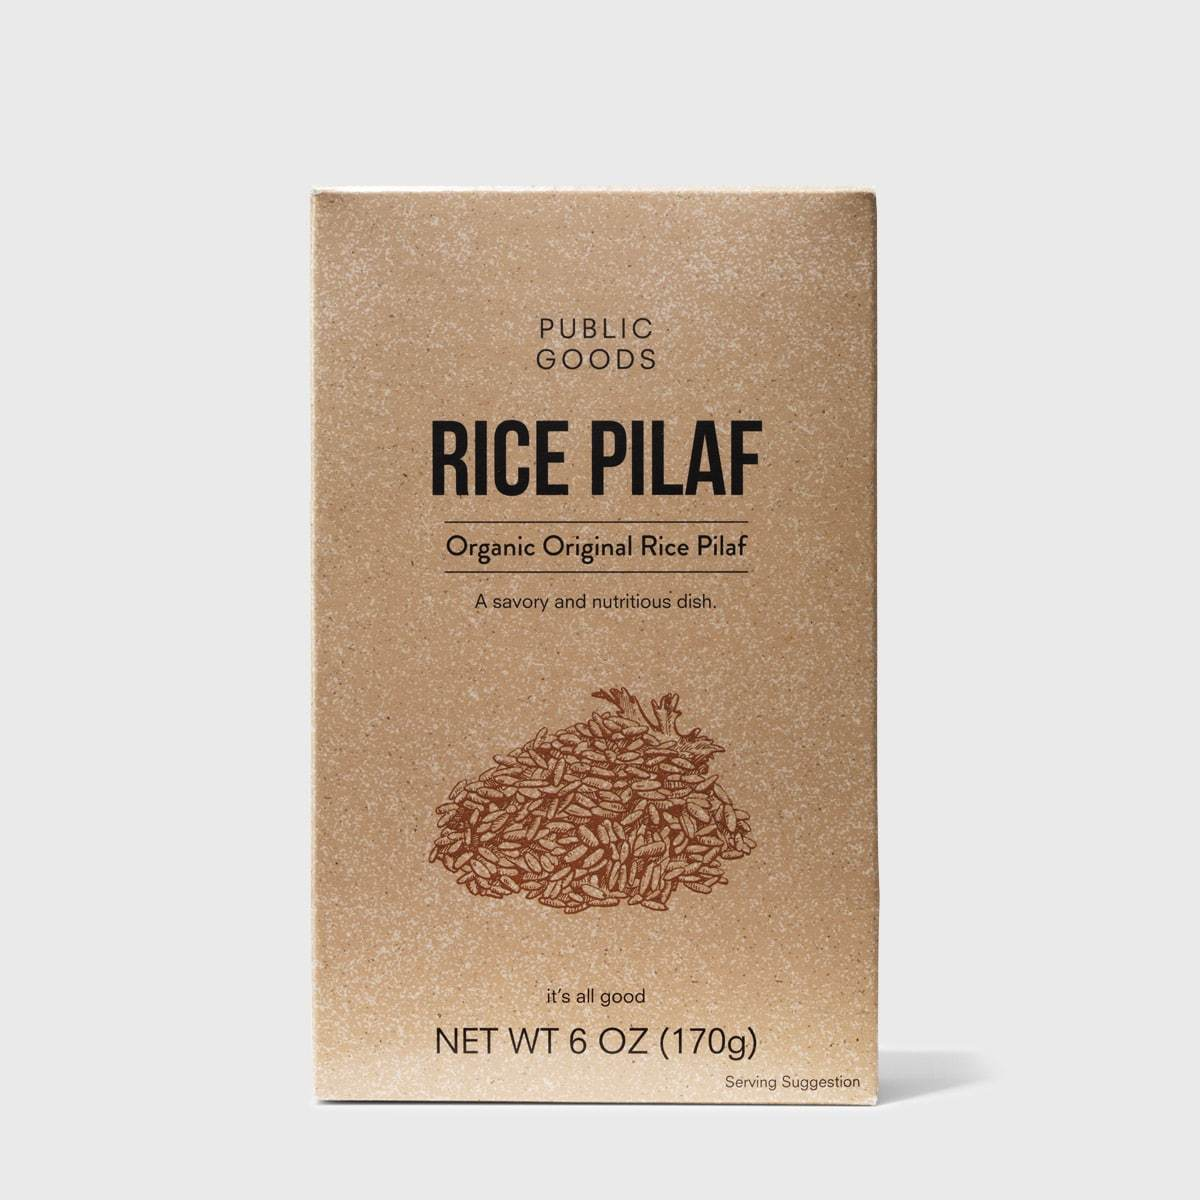 Public Goods Grocery Rice Pilaf